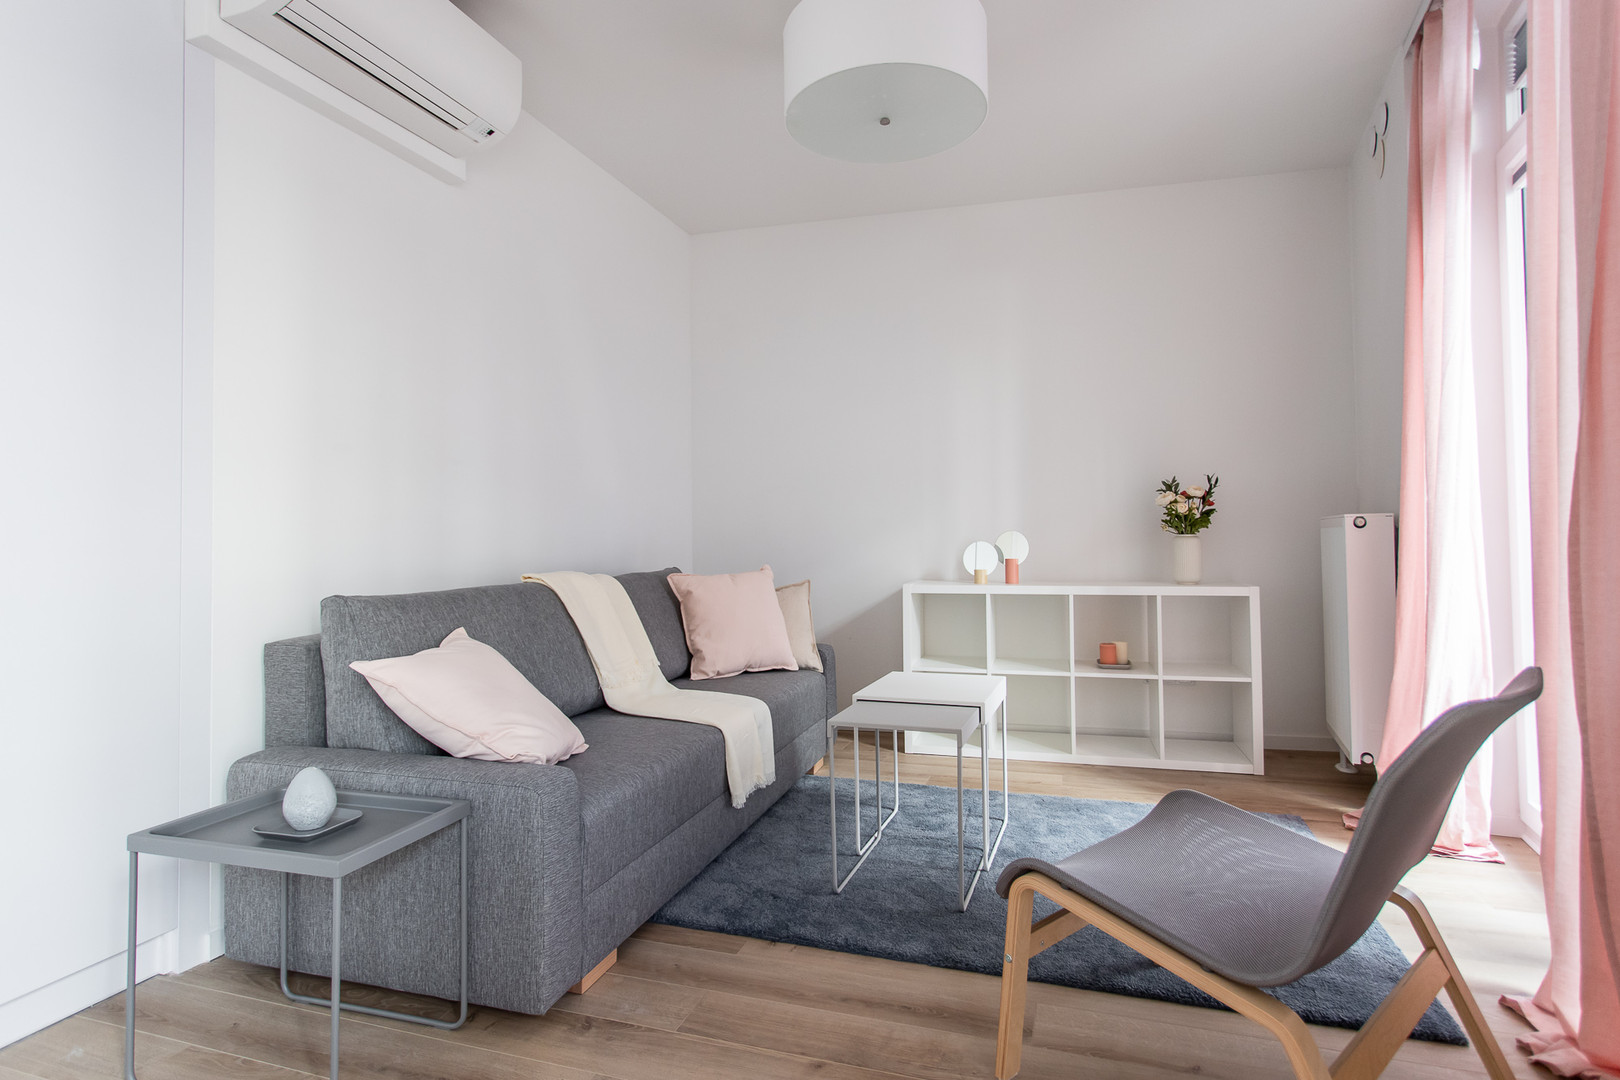 Wrasaw Wola Office Apartments for rent_5